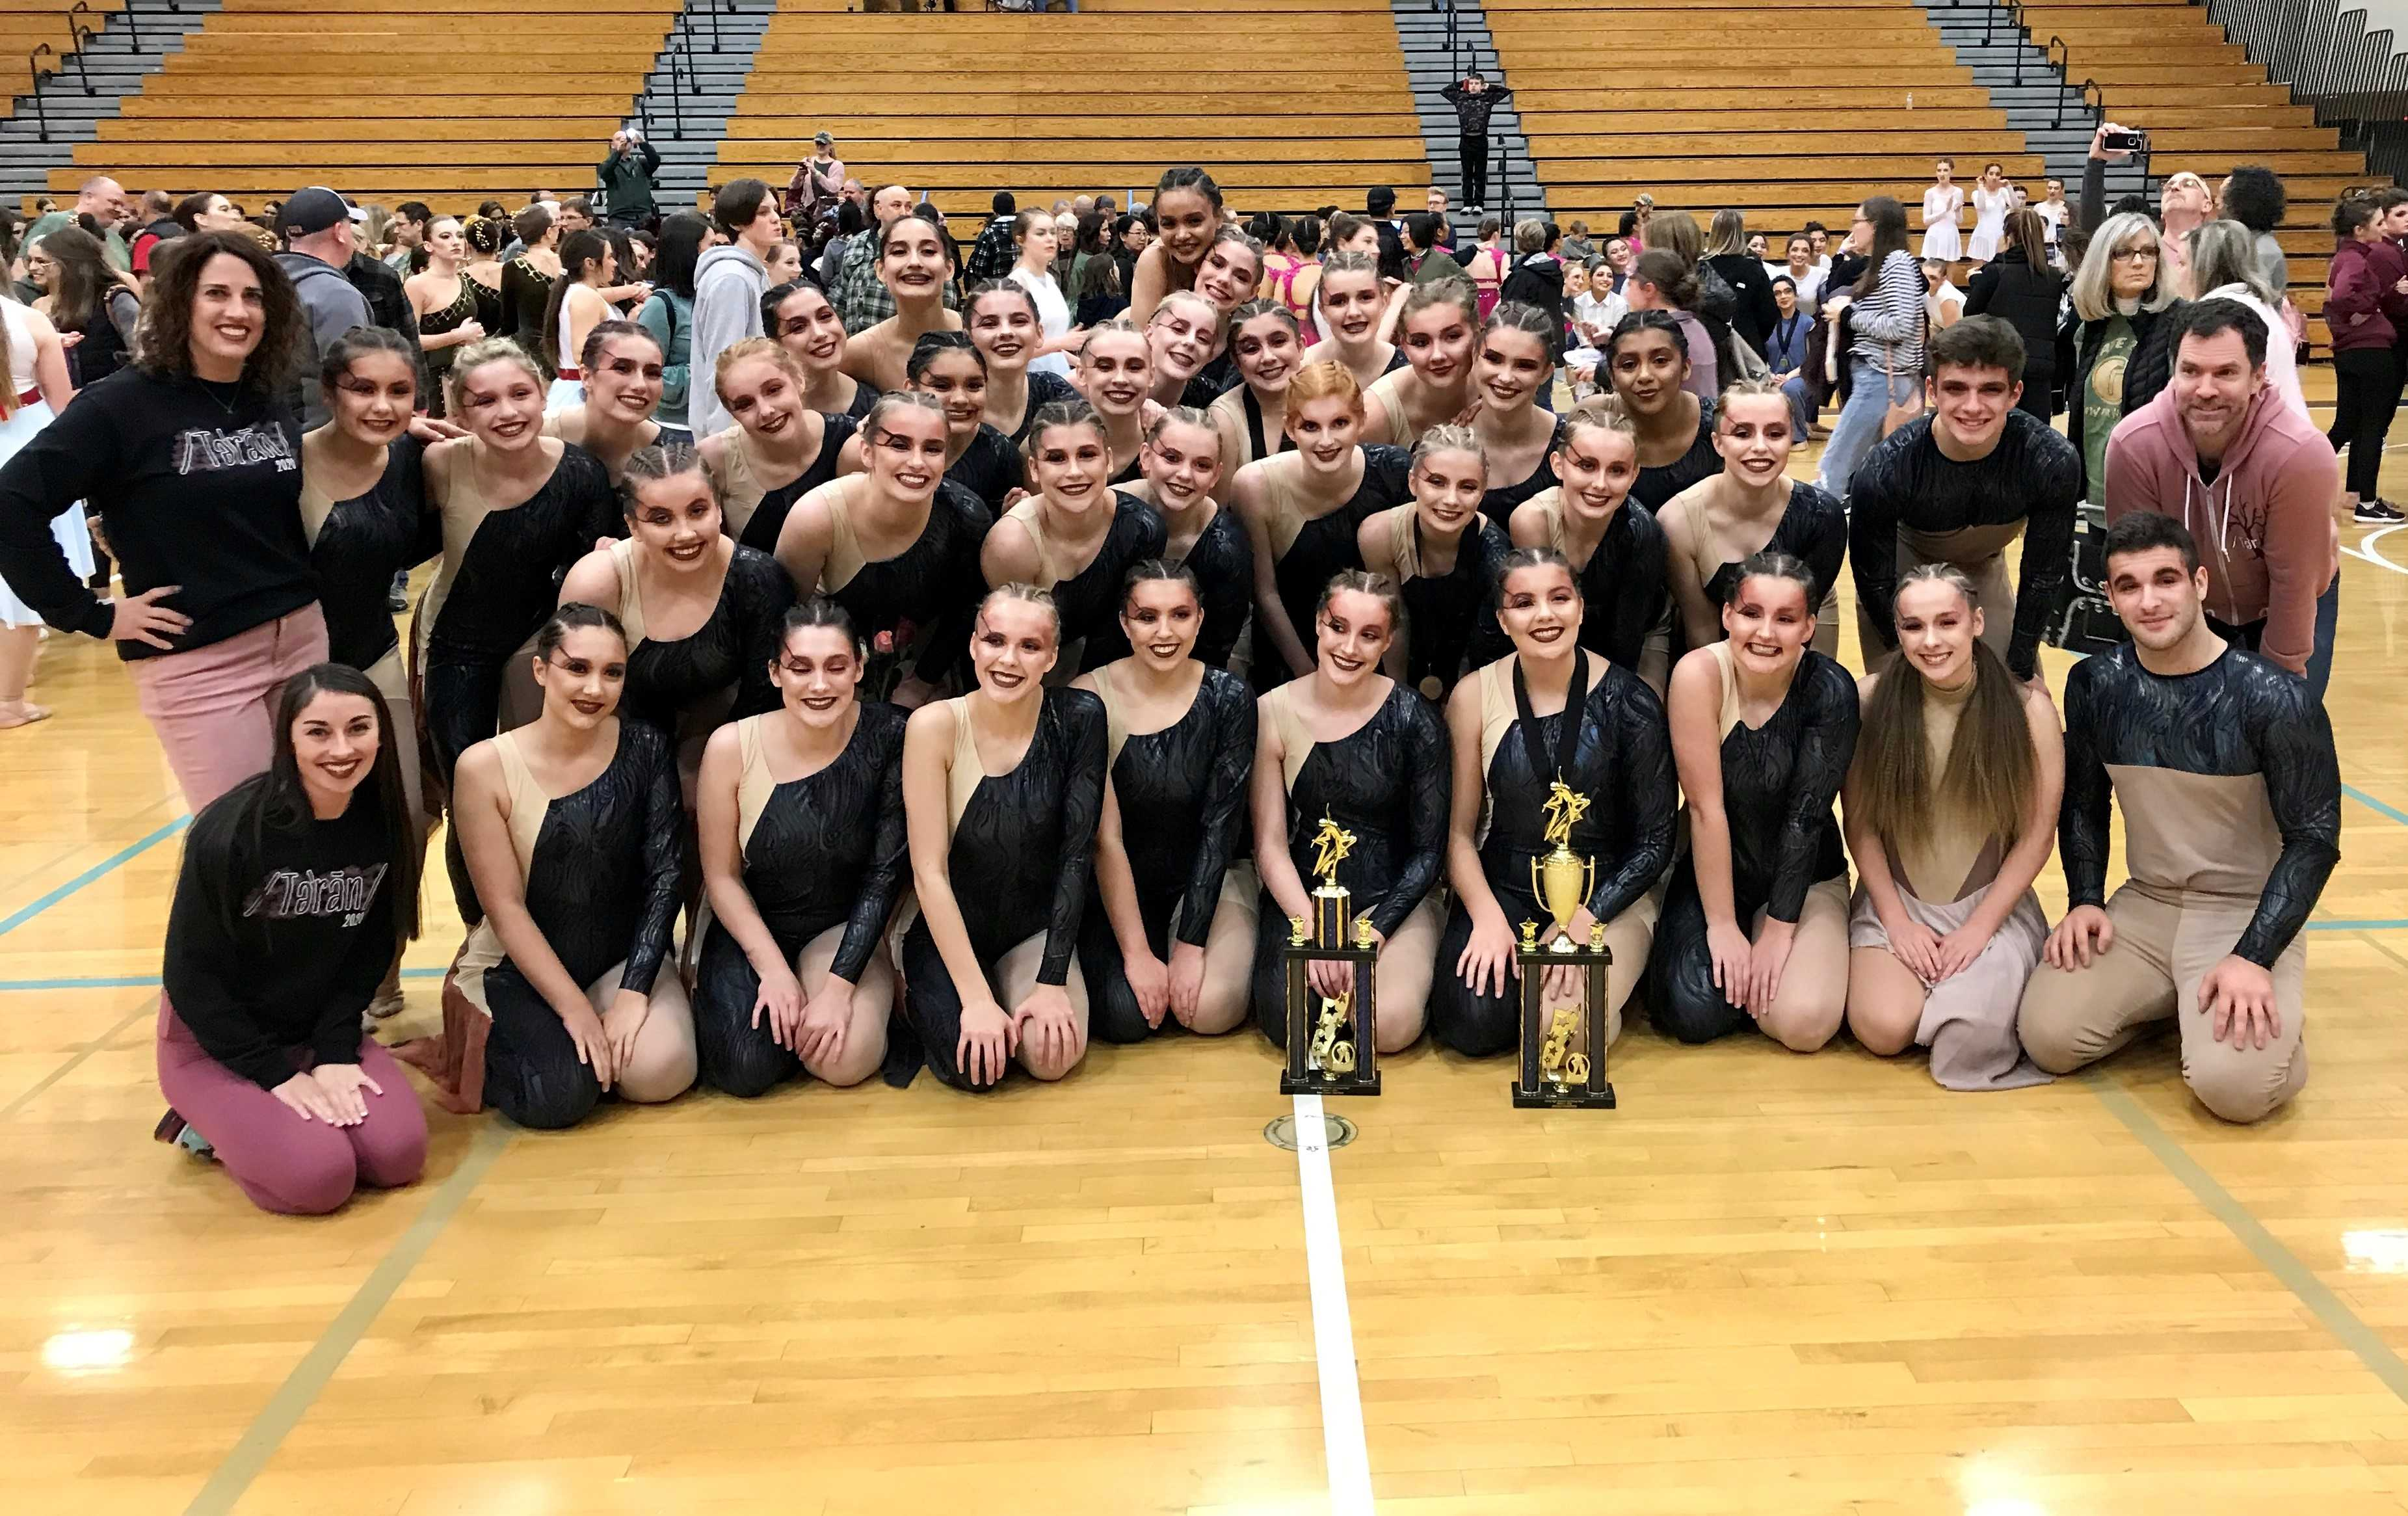 The Cougar Dancers after winning the Show Division and Grand Champion honors at Liberty.